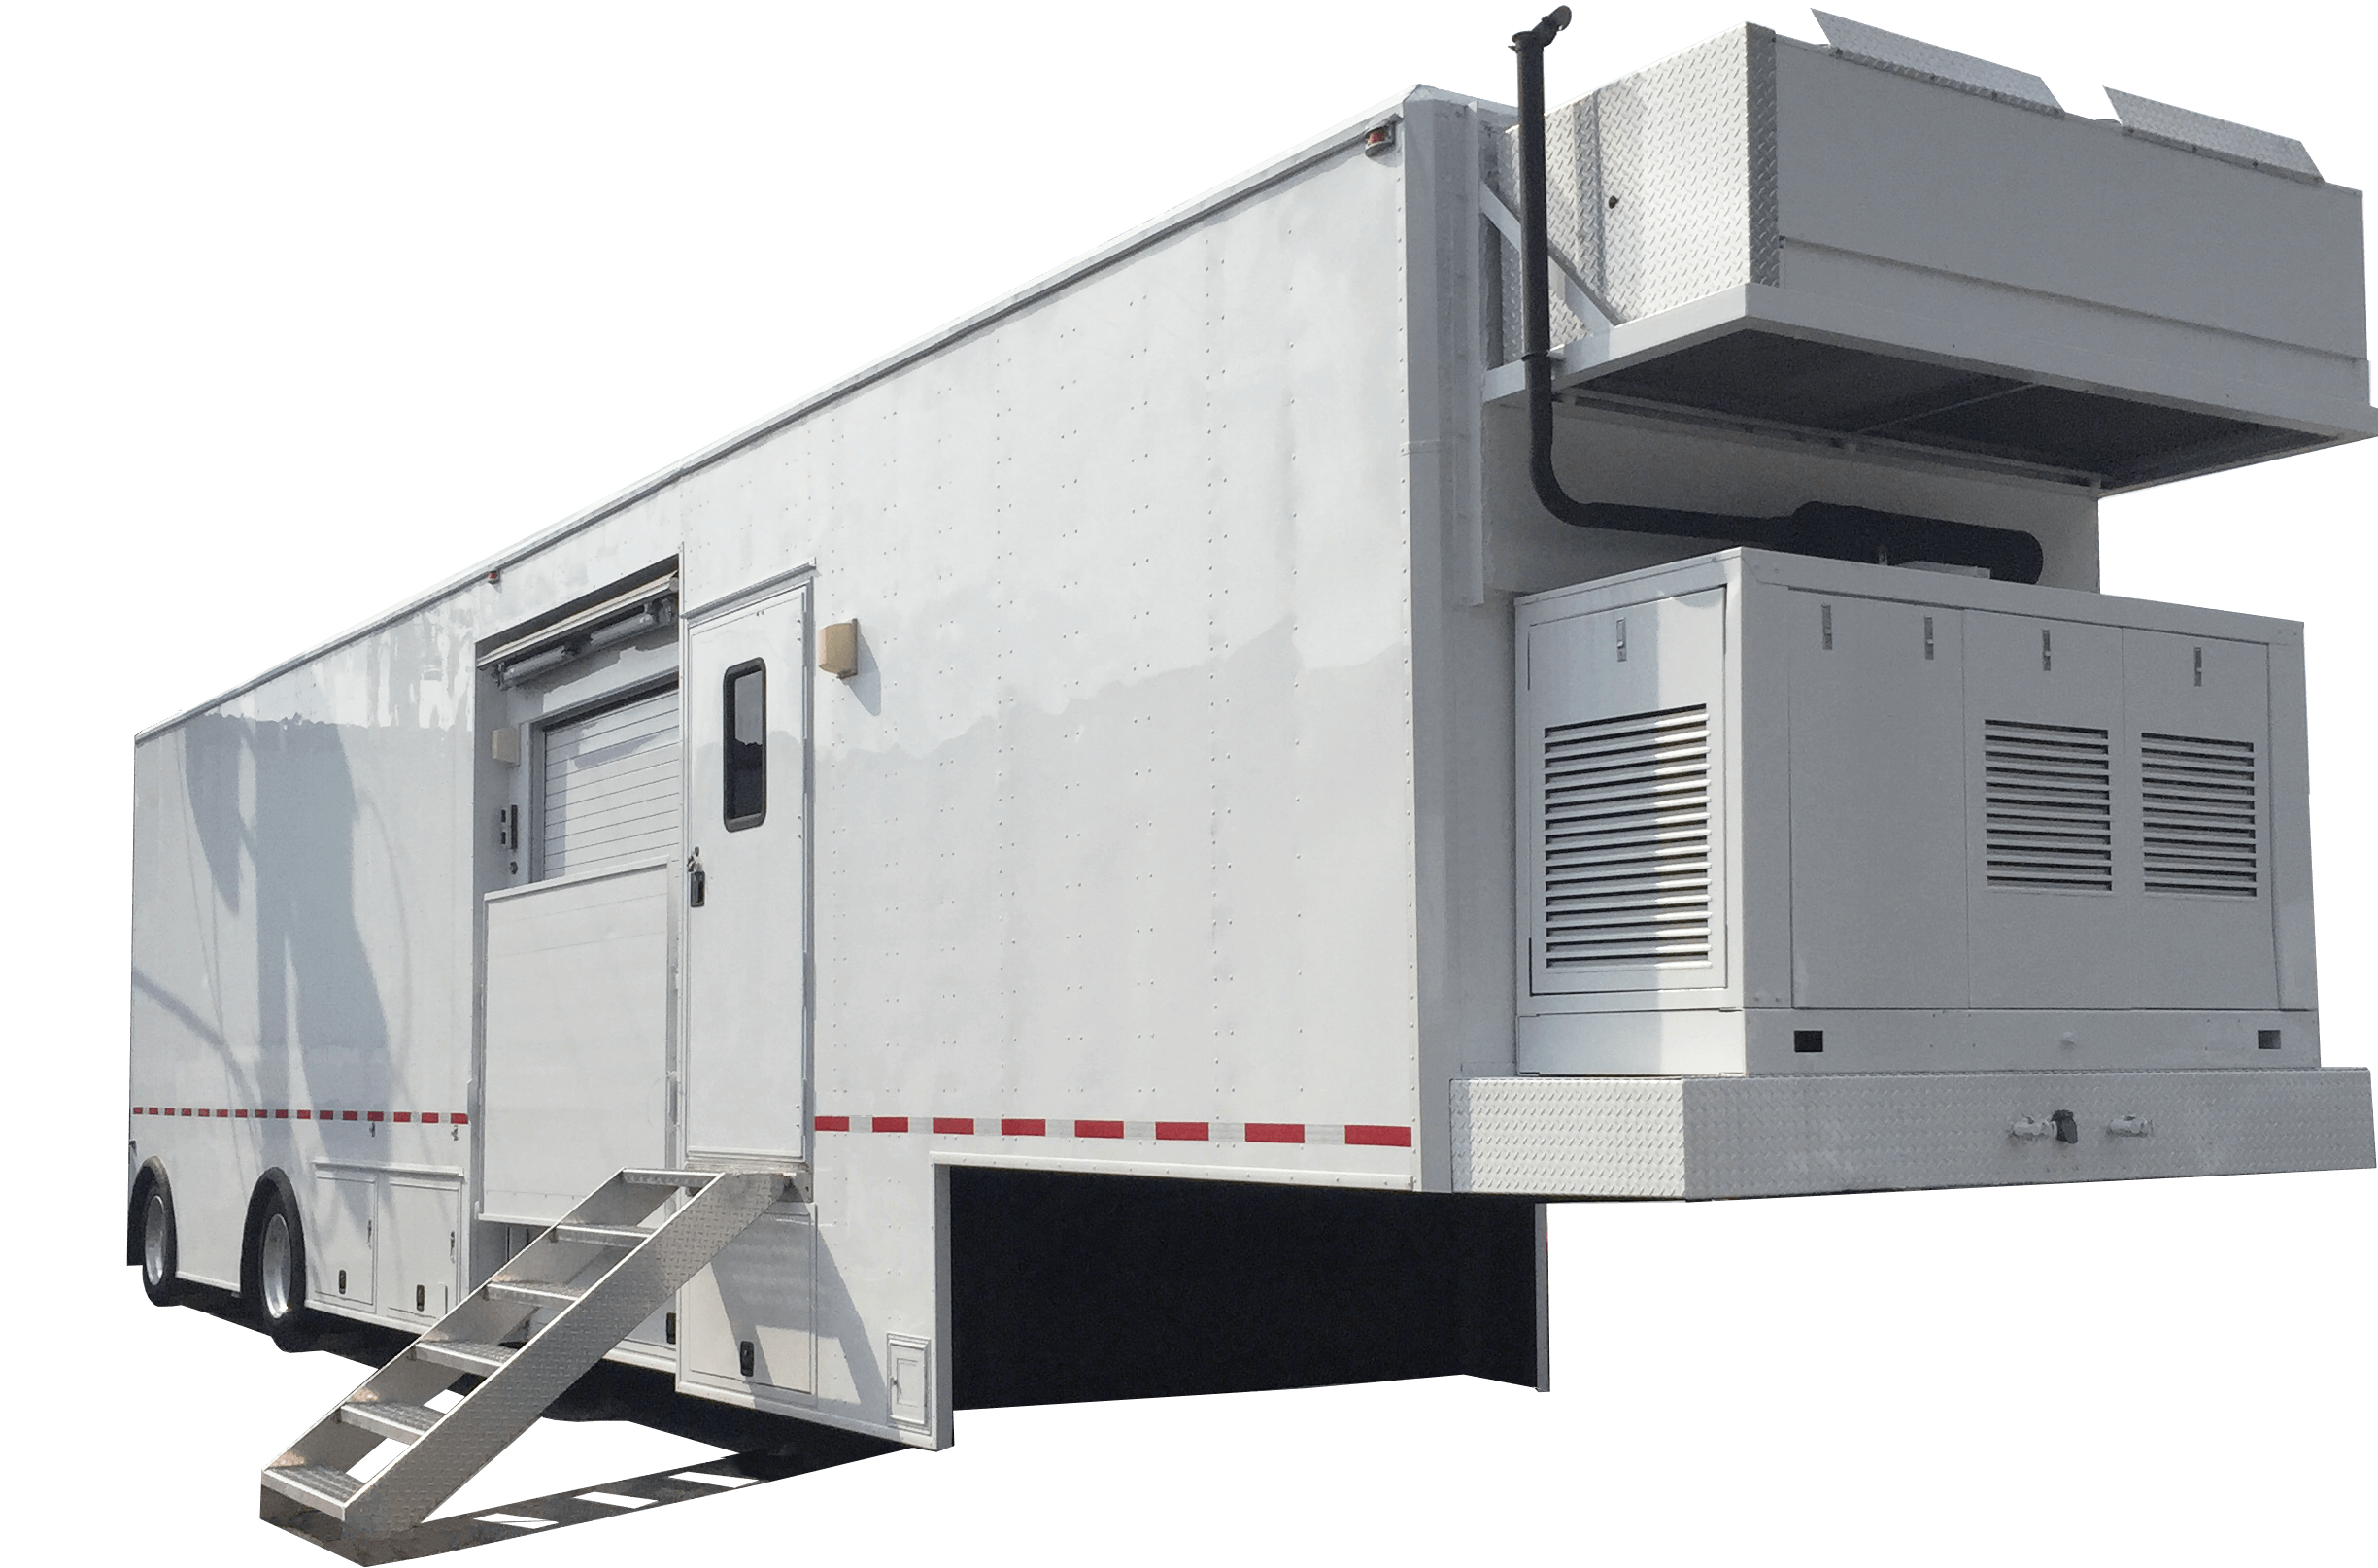 Mobile MRI Rental Trailer - Mobile MRI Machine Exterior